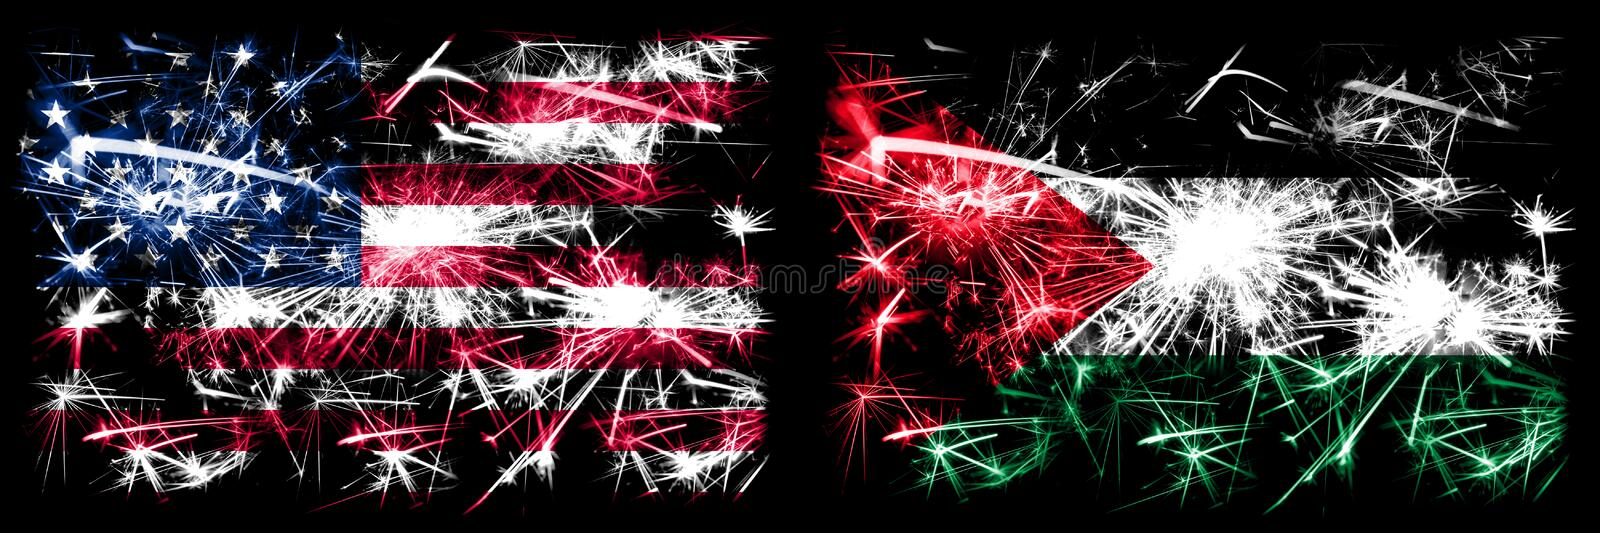 United States of America, USA vs Palestine, Palestinian New Year celebration sparkling fireworks flags concept background. Combination of two abstract states stock illustration